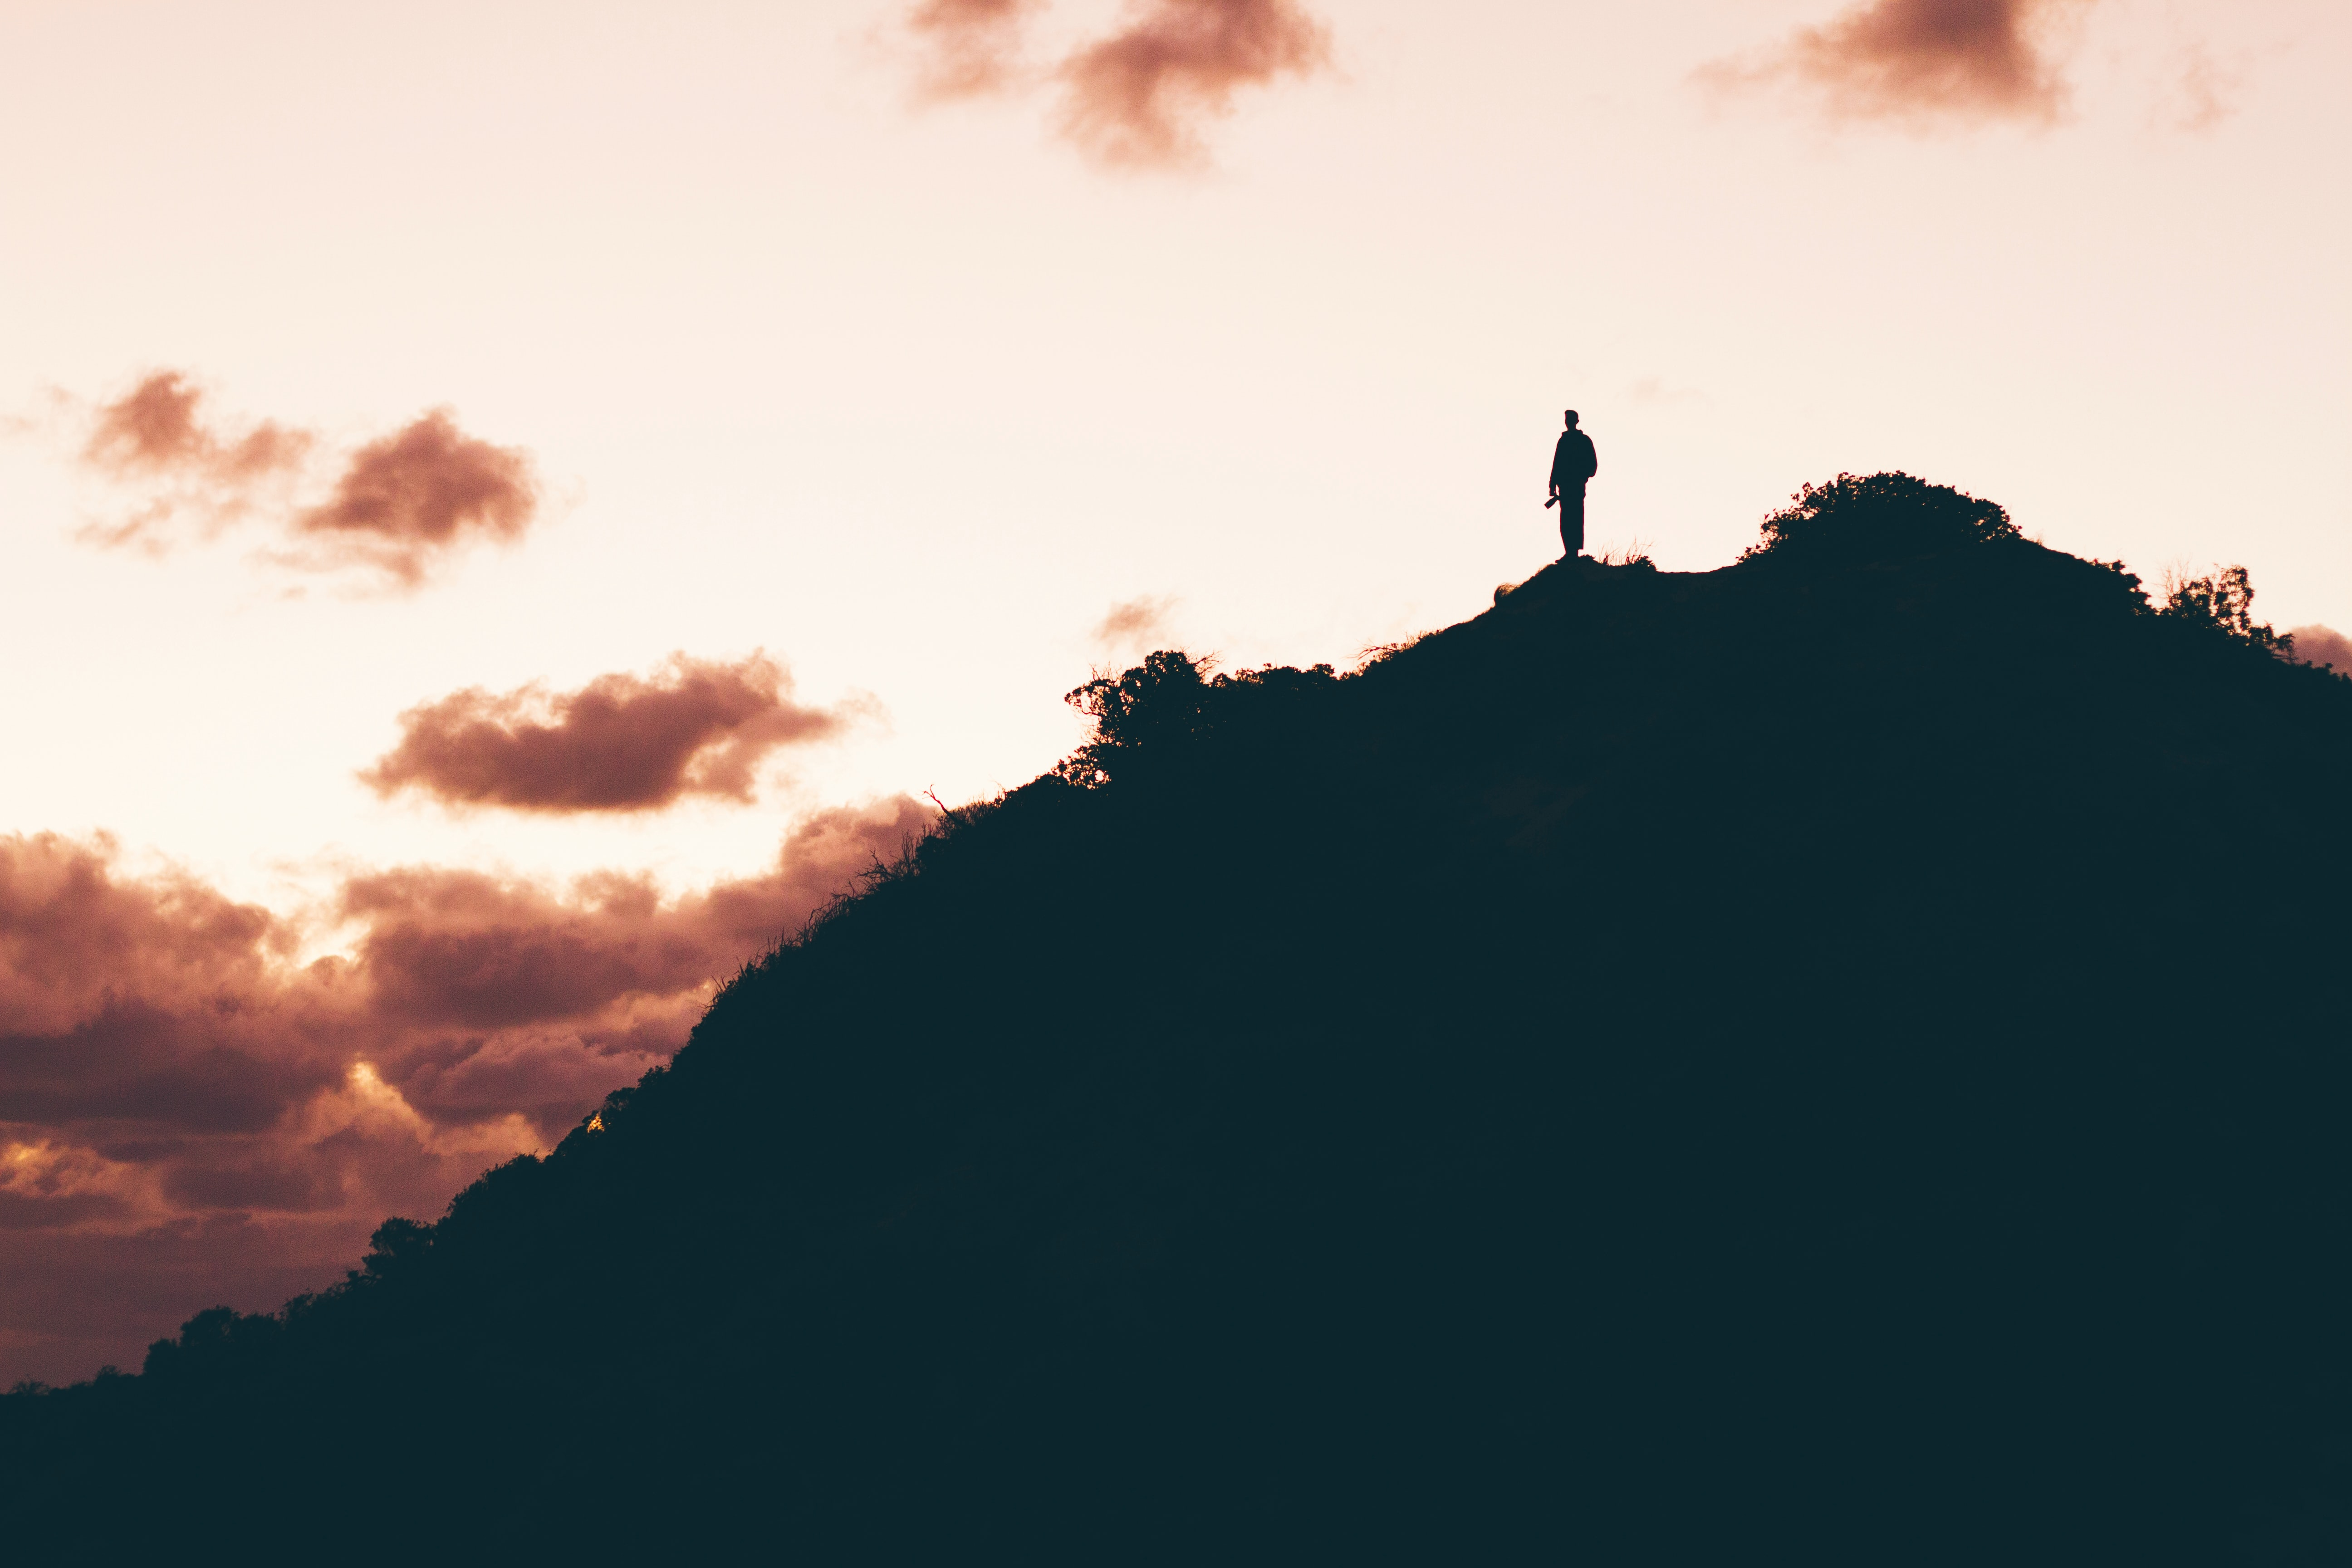 "Photo of a silhouette of a person on top of a hill against a bright sky with low clouds <span>Photo by <a href=""https://unsplash.com/@jordanhile?utm_source=unsplash&amp;utm_medium=referral&amp;utm_content=creditCopyText"">Jordan Hile</a> on <a href=""https://unsplash.com/collections/183850/the-reasoning?utm_source=unsplash&amp;utm_medium=referral&amp;utm_content=creditCopyText"">Unsplash</a></span>"